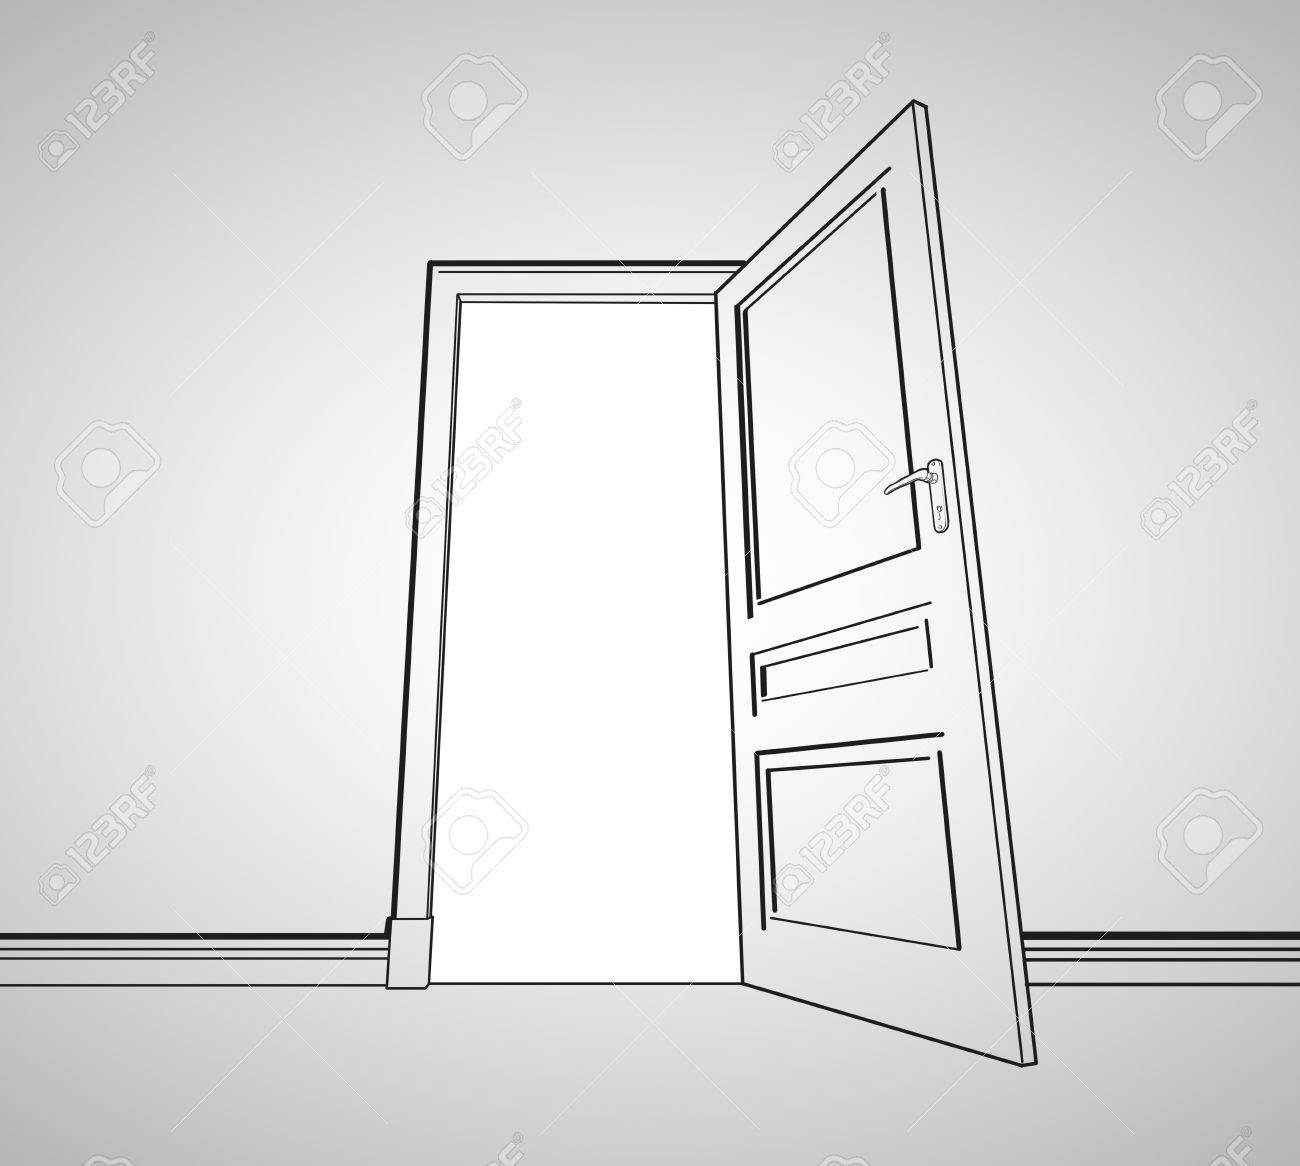 open door drawing drawing gray room with opened door stock photo 22461205 drawing gray room with opened door photo picture and royalty